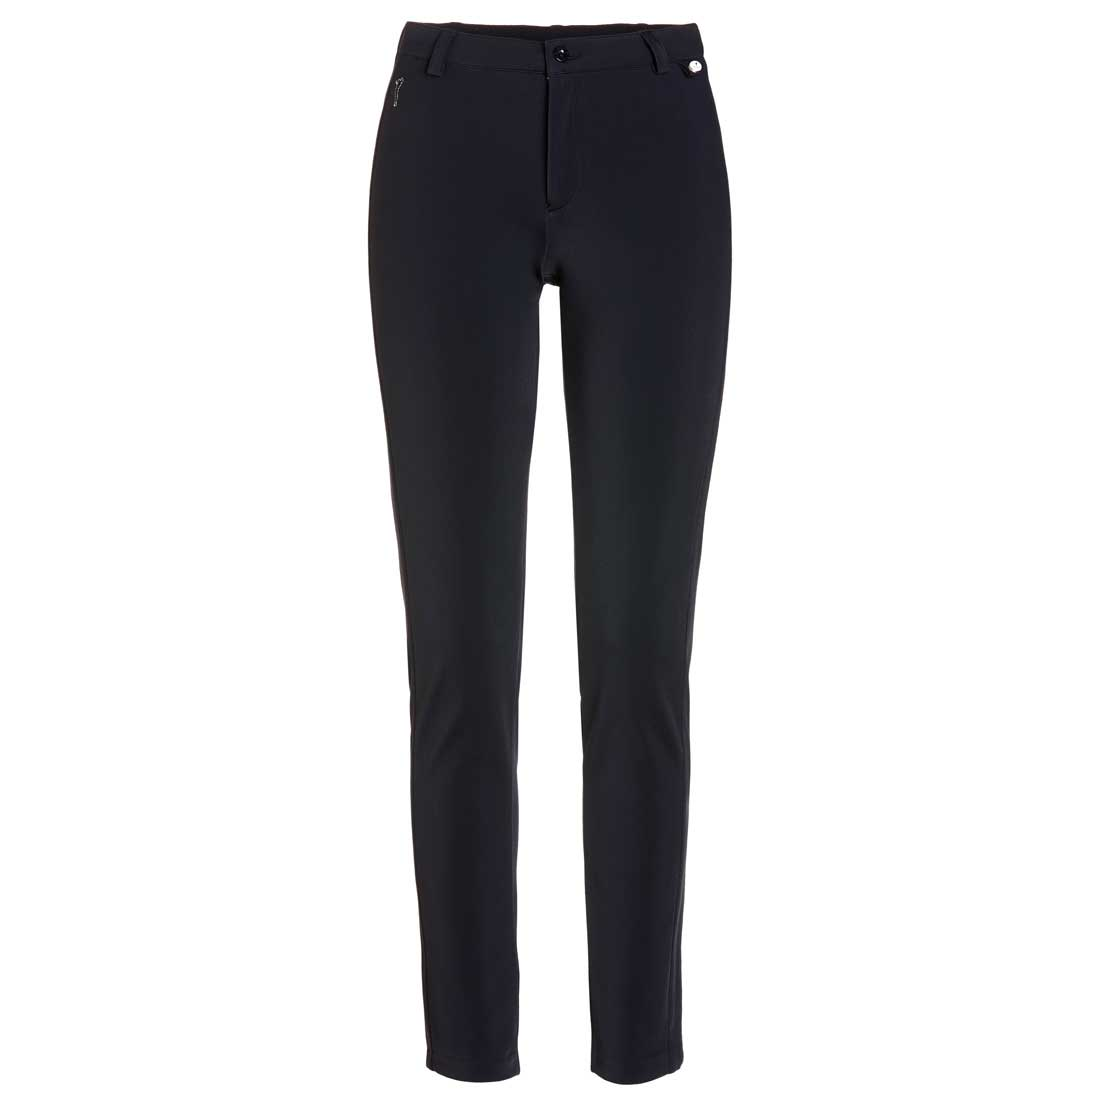 Extremely comfortable 4-way stretch ladies' golf trousers in slim fit long